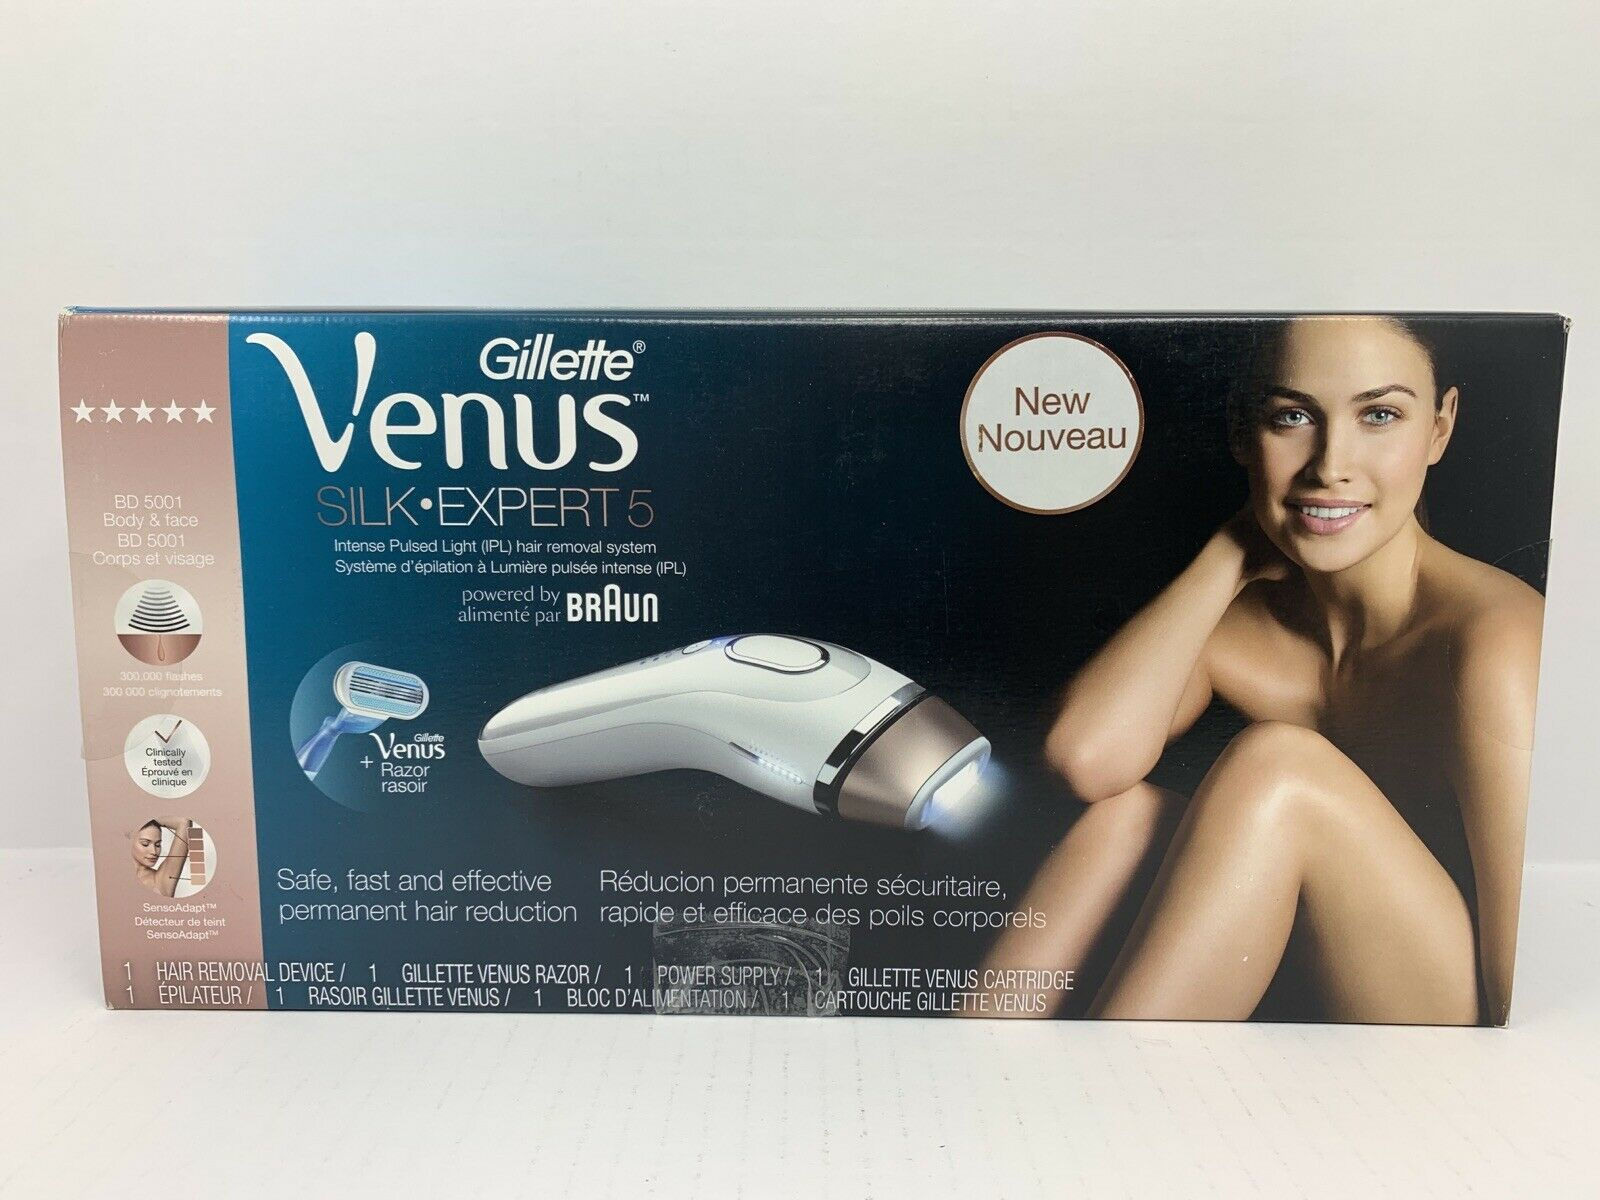 Braun Gillette Venus Naked Skin Ipl Hair Remover For Sale Online